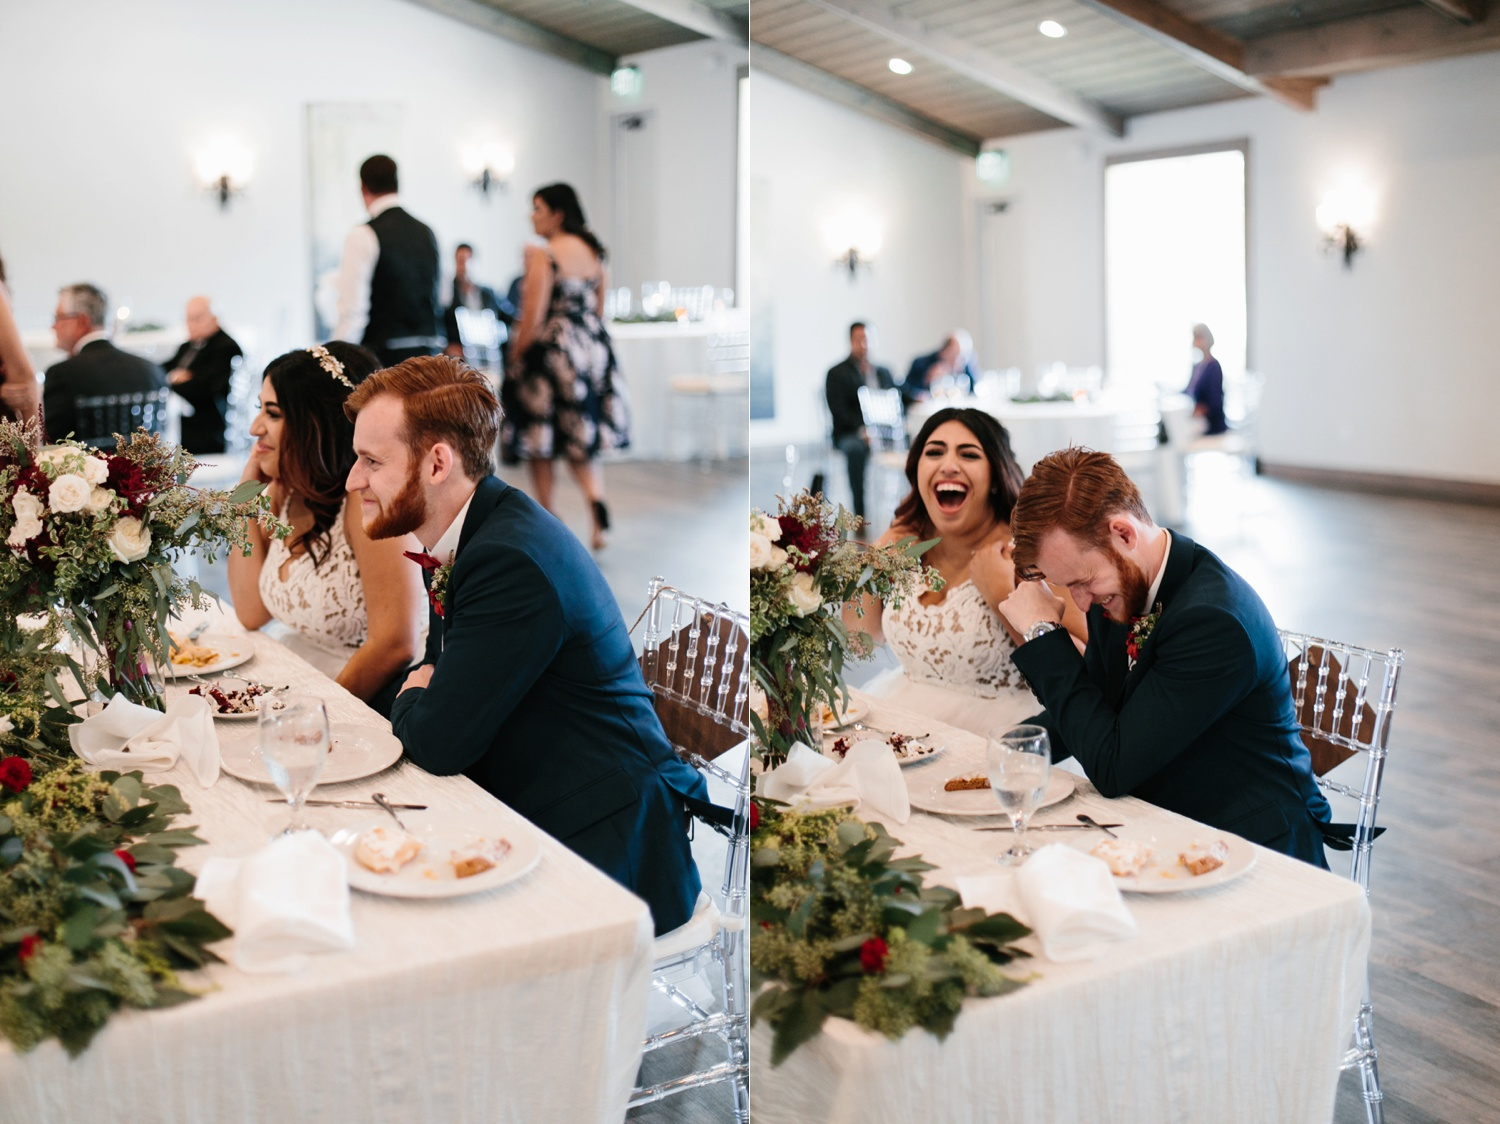 Grant + Lysette | a vibrant, deep burgundy and navy, and mixed metals wedding at Hidden Pines Chapel by North Texas Wedding Photographer Rachel Meagan Photography 149